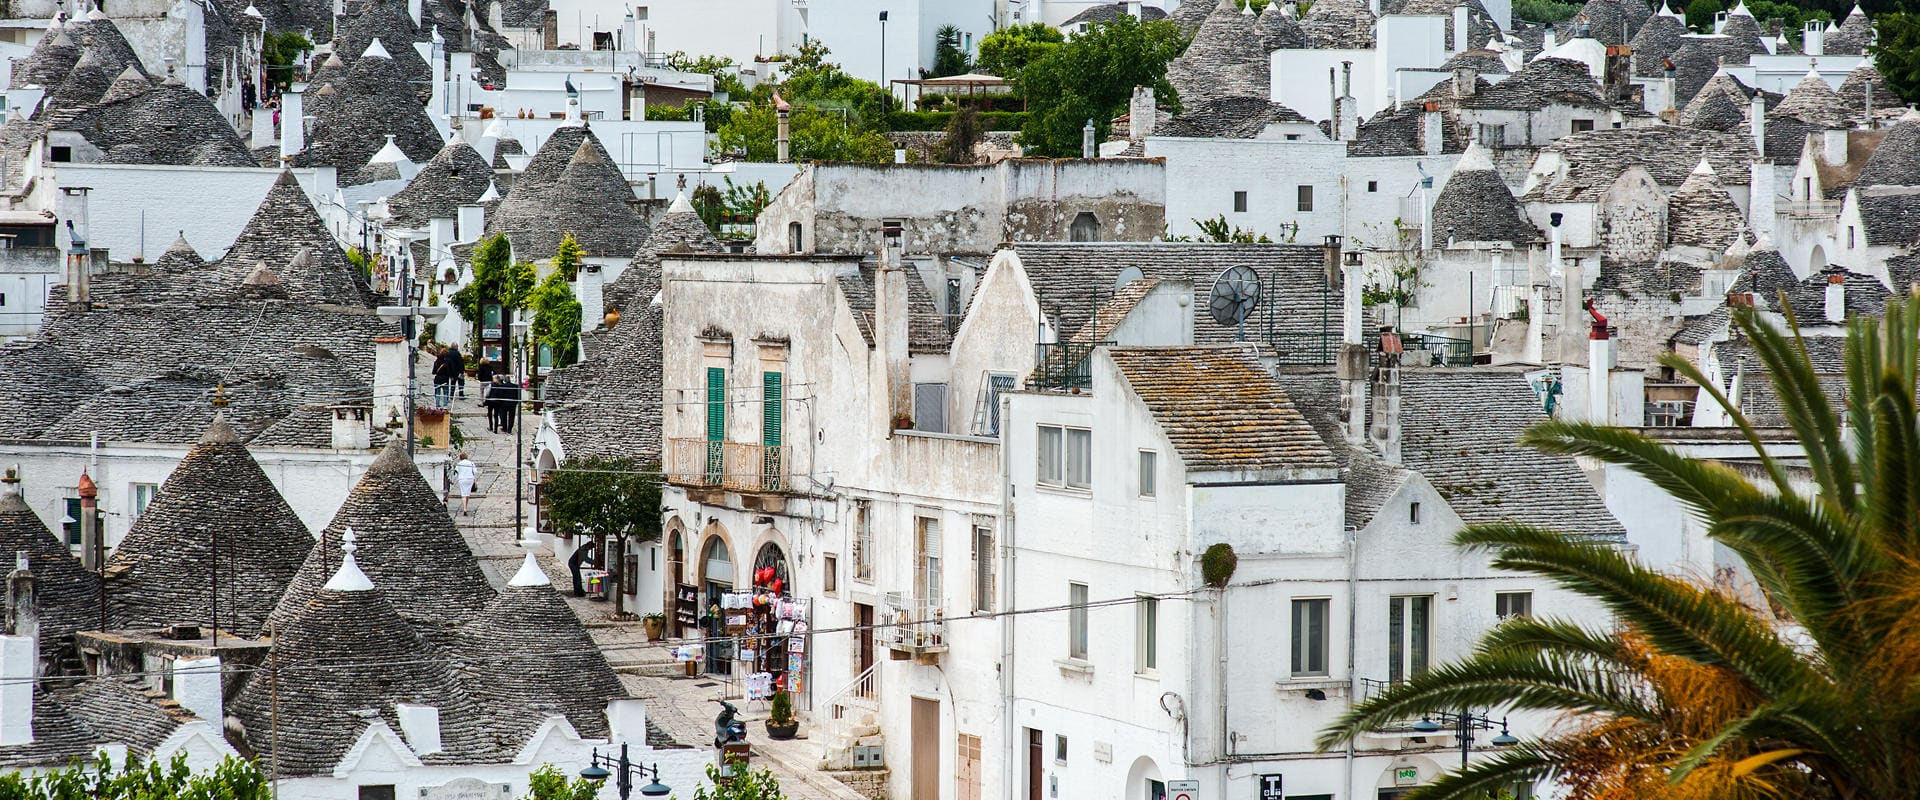 The Grantourismo Travel Guide to Alberobello, Italy. Copyright © 2017 Terence Carter / Grantourismo. All Rights Reserved.